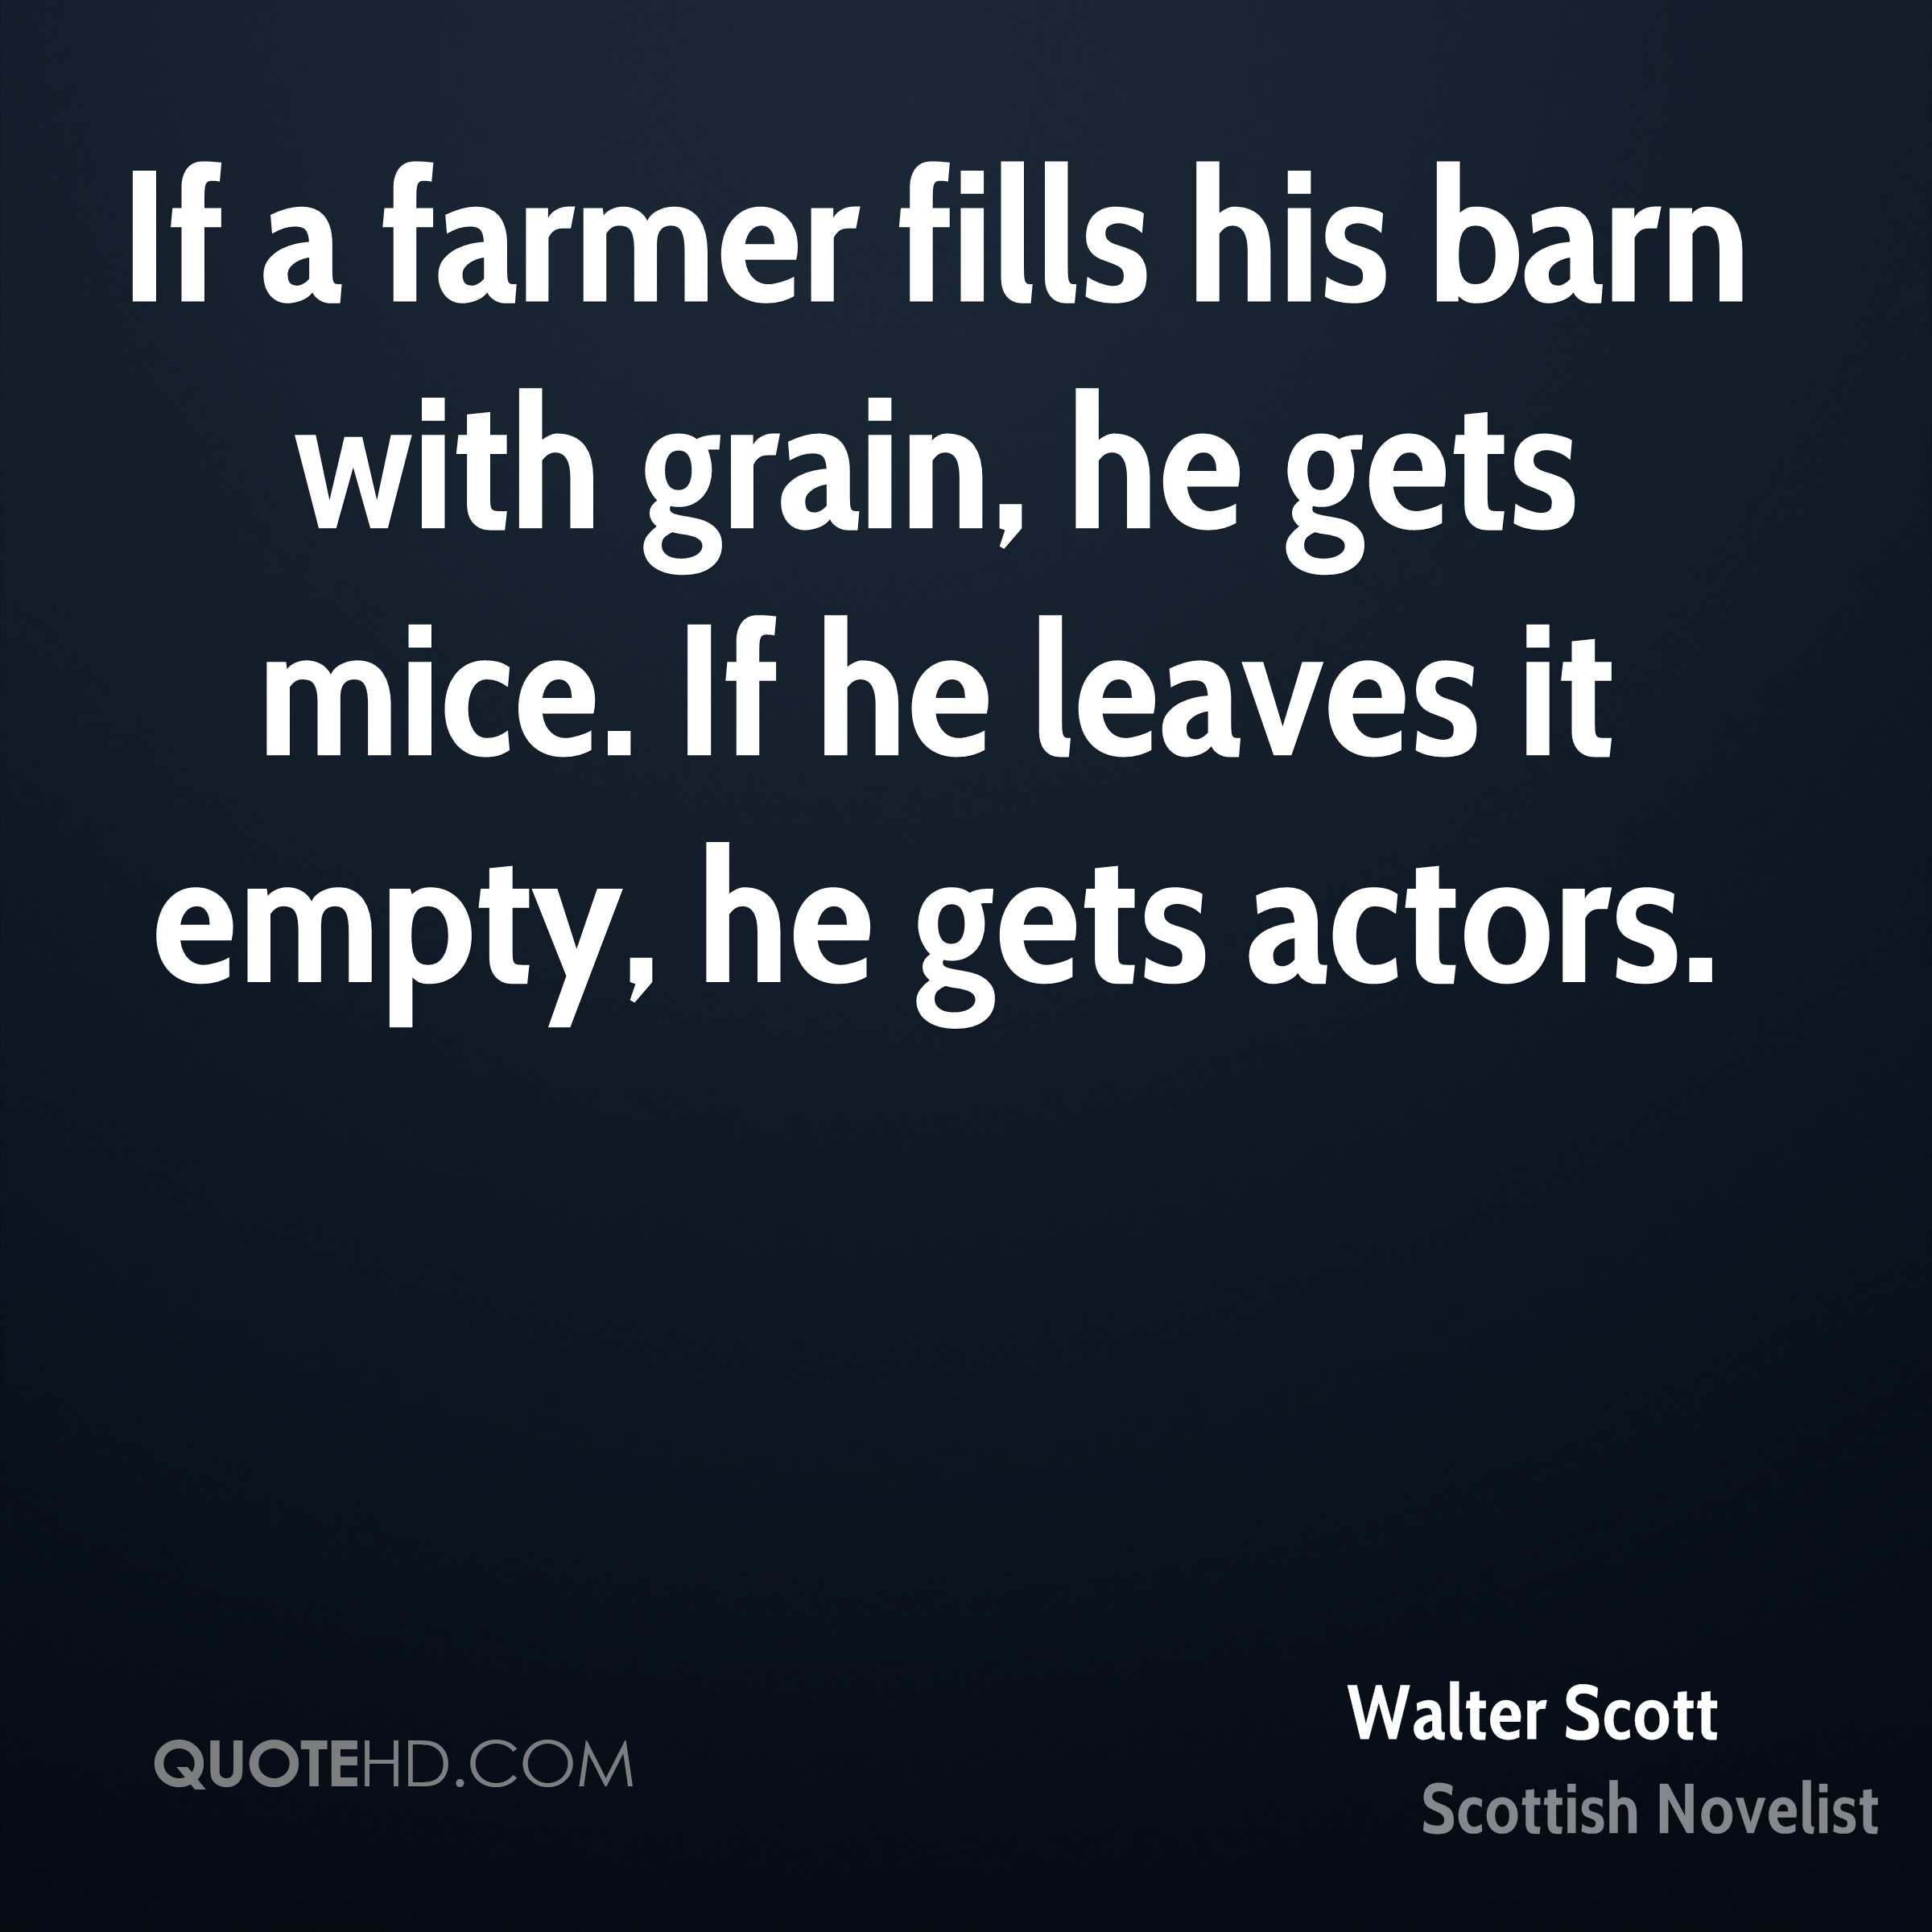 If a farmer fills his barn with grain, he gets mice. If he leaves it empty, he gets actors.